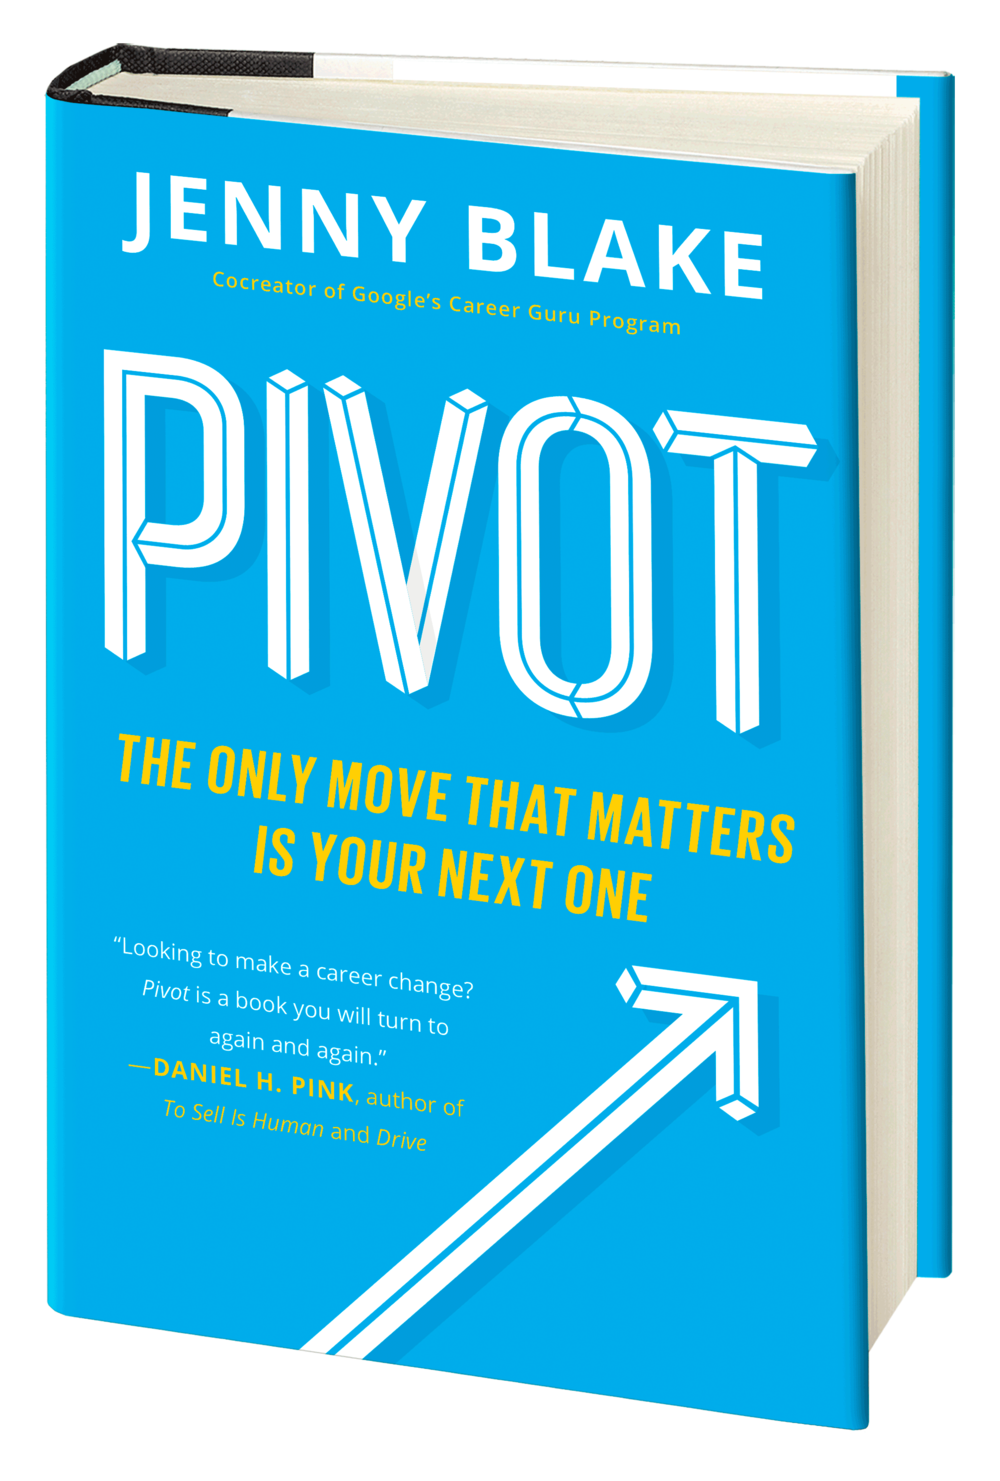 Click to visit the PIVOT book website at PivotMethod.com.